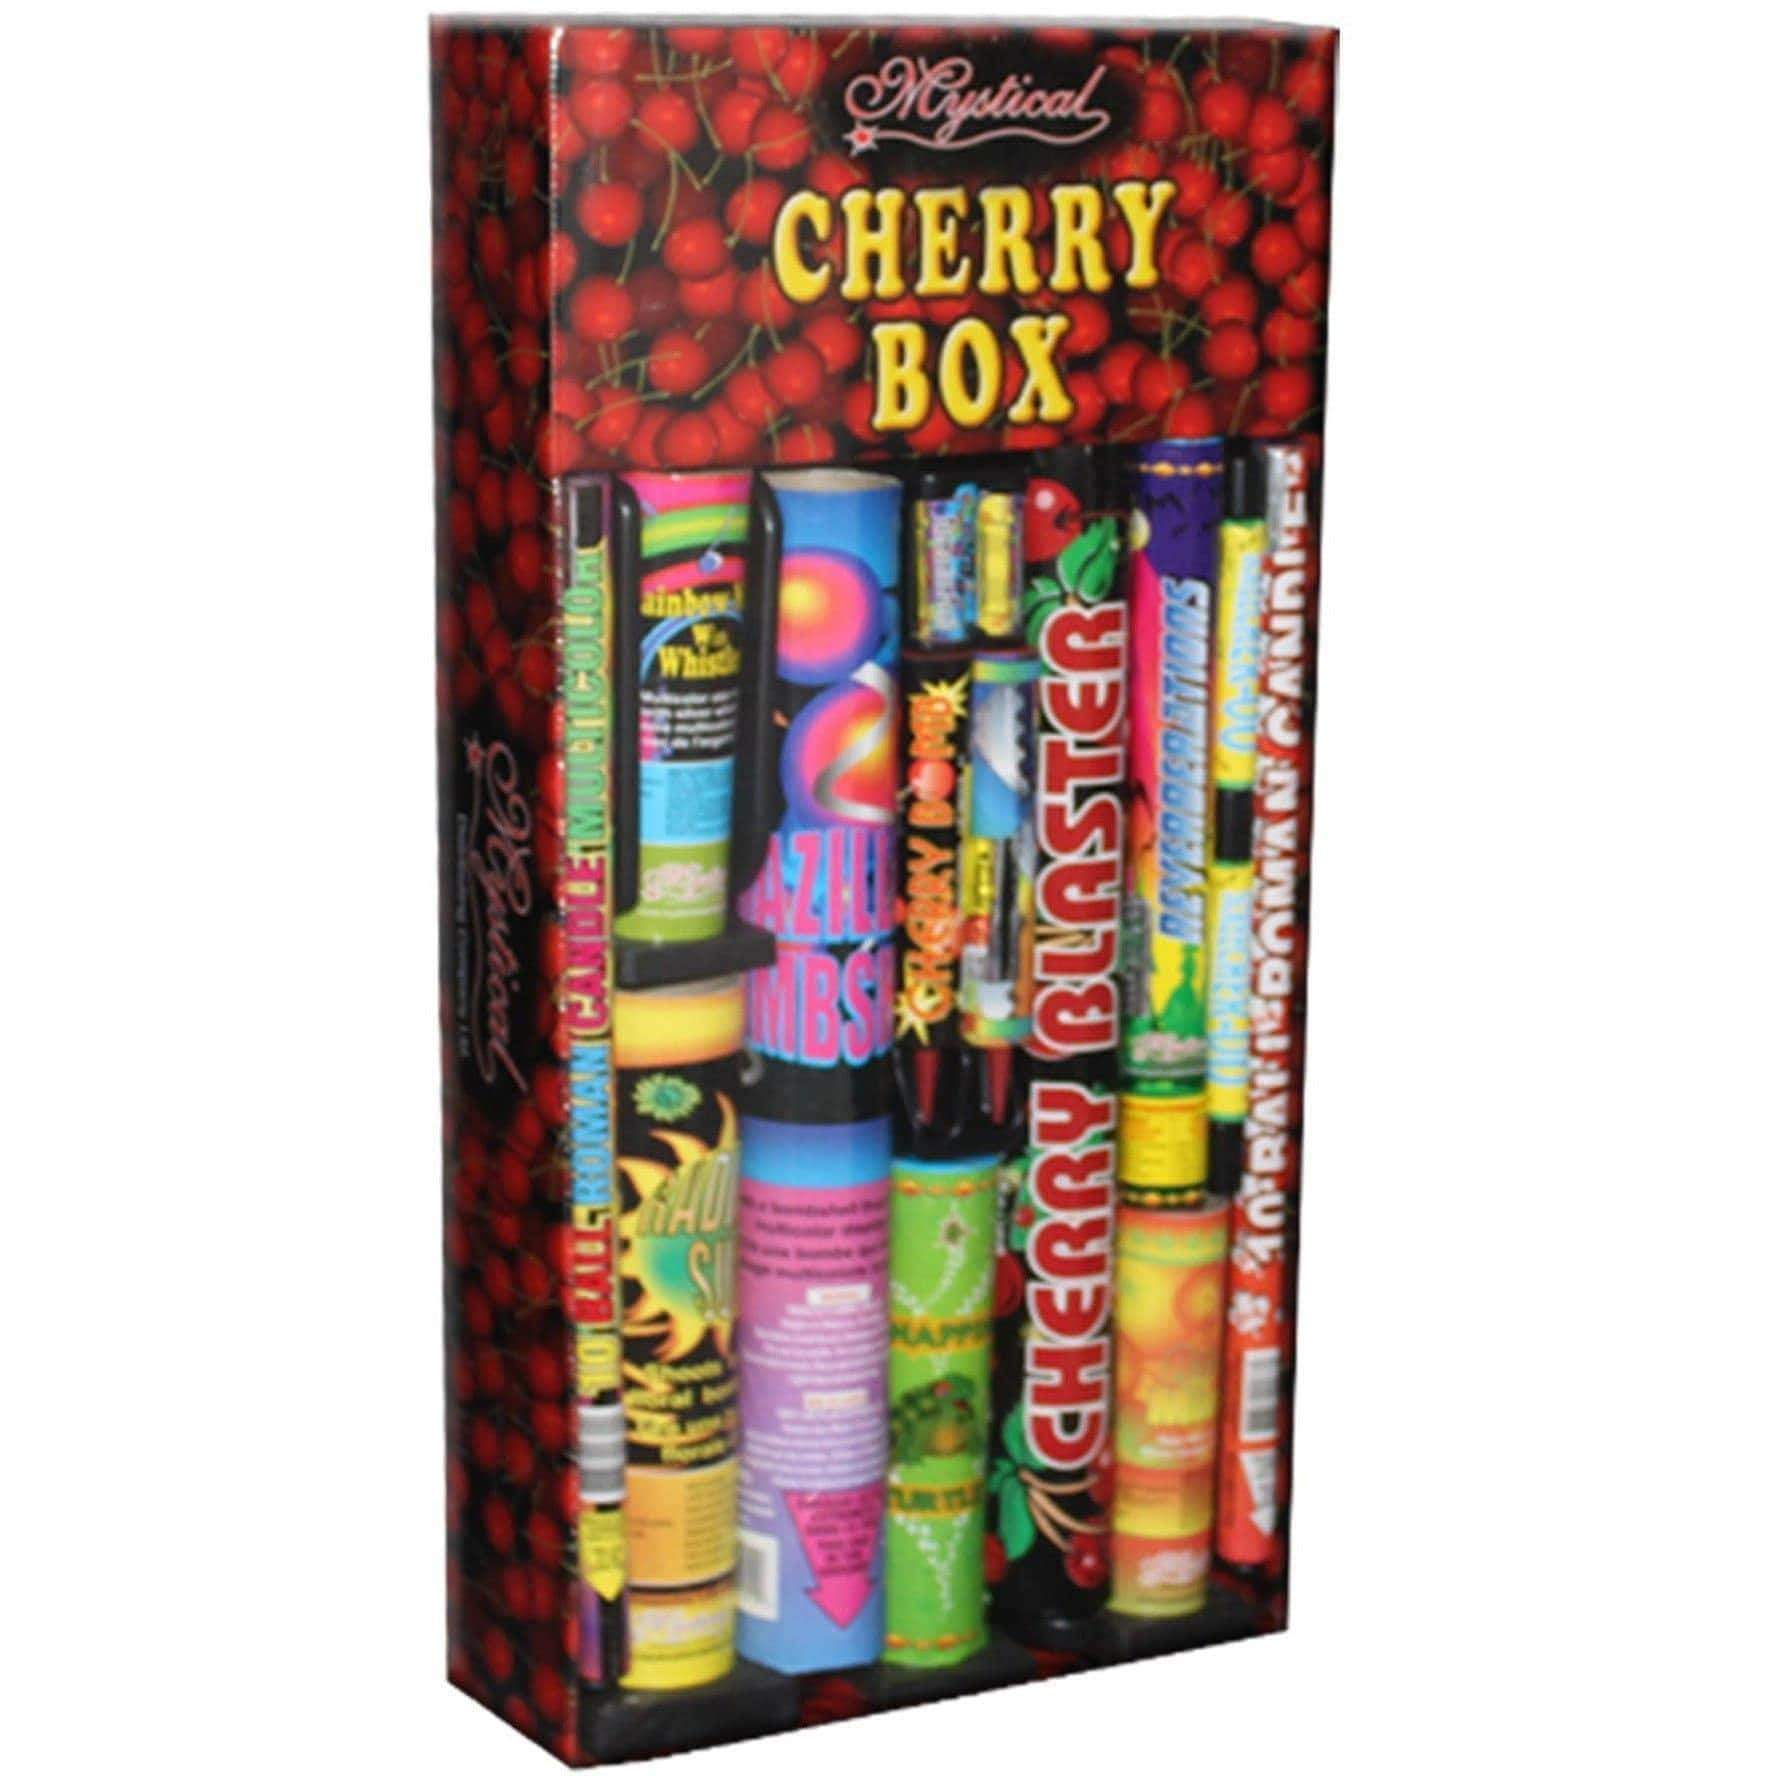 Mystical Fireworks Family Pack Assortment Mystical Cherry Box